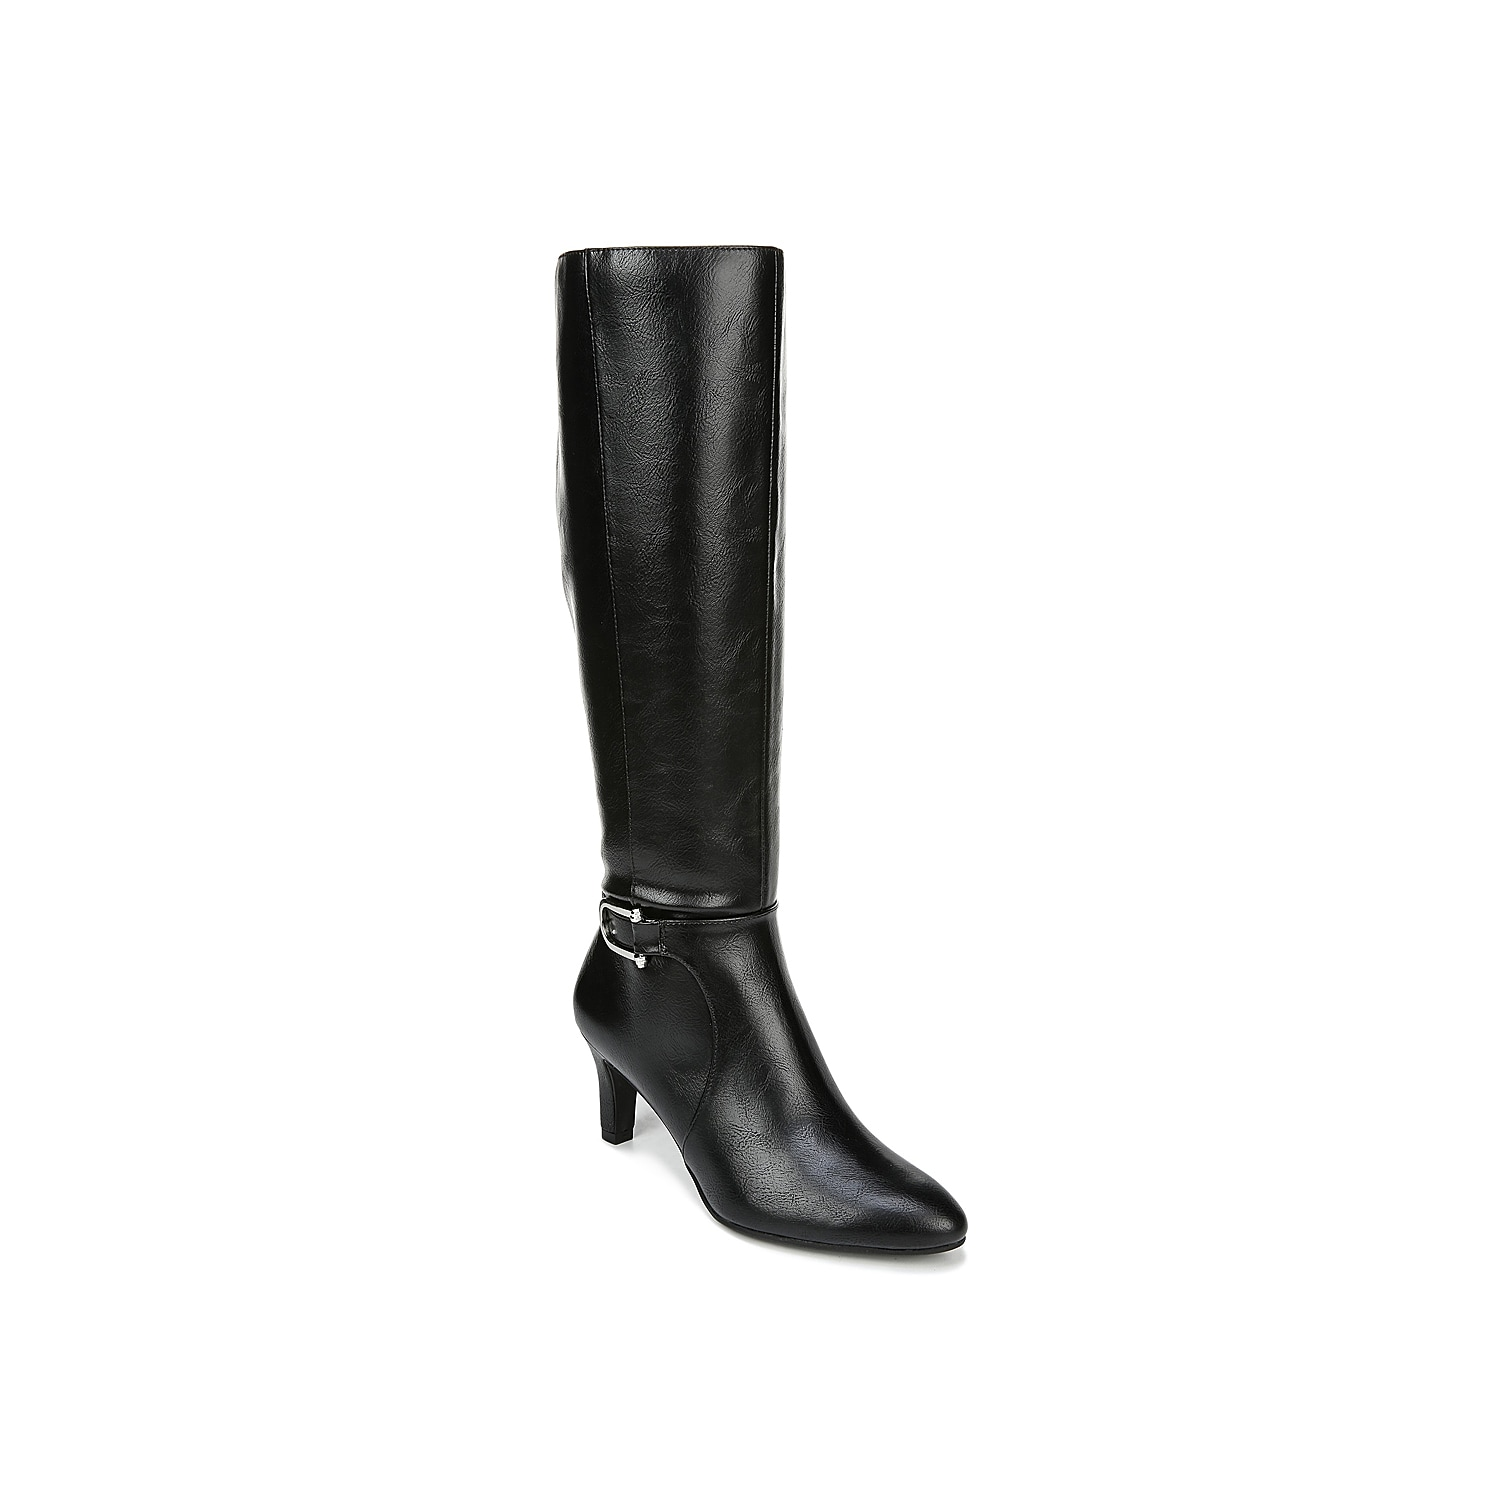 Amplify your cold-weather look with the Galina boot from LifeStride. These boots feature an ornate buckle accent at the ankle and a heel that will bring just-right height to jeans or a pencil skirt. Click here for Boot Measuring Guide.